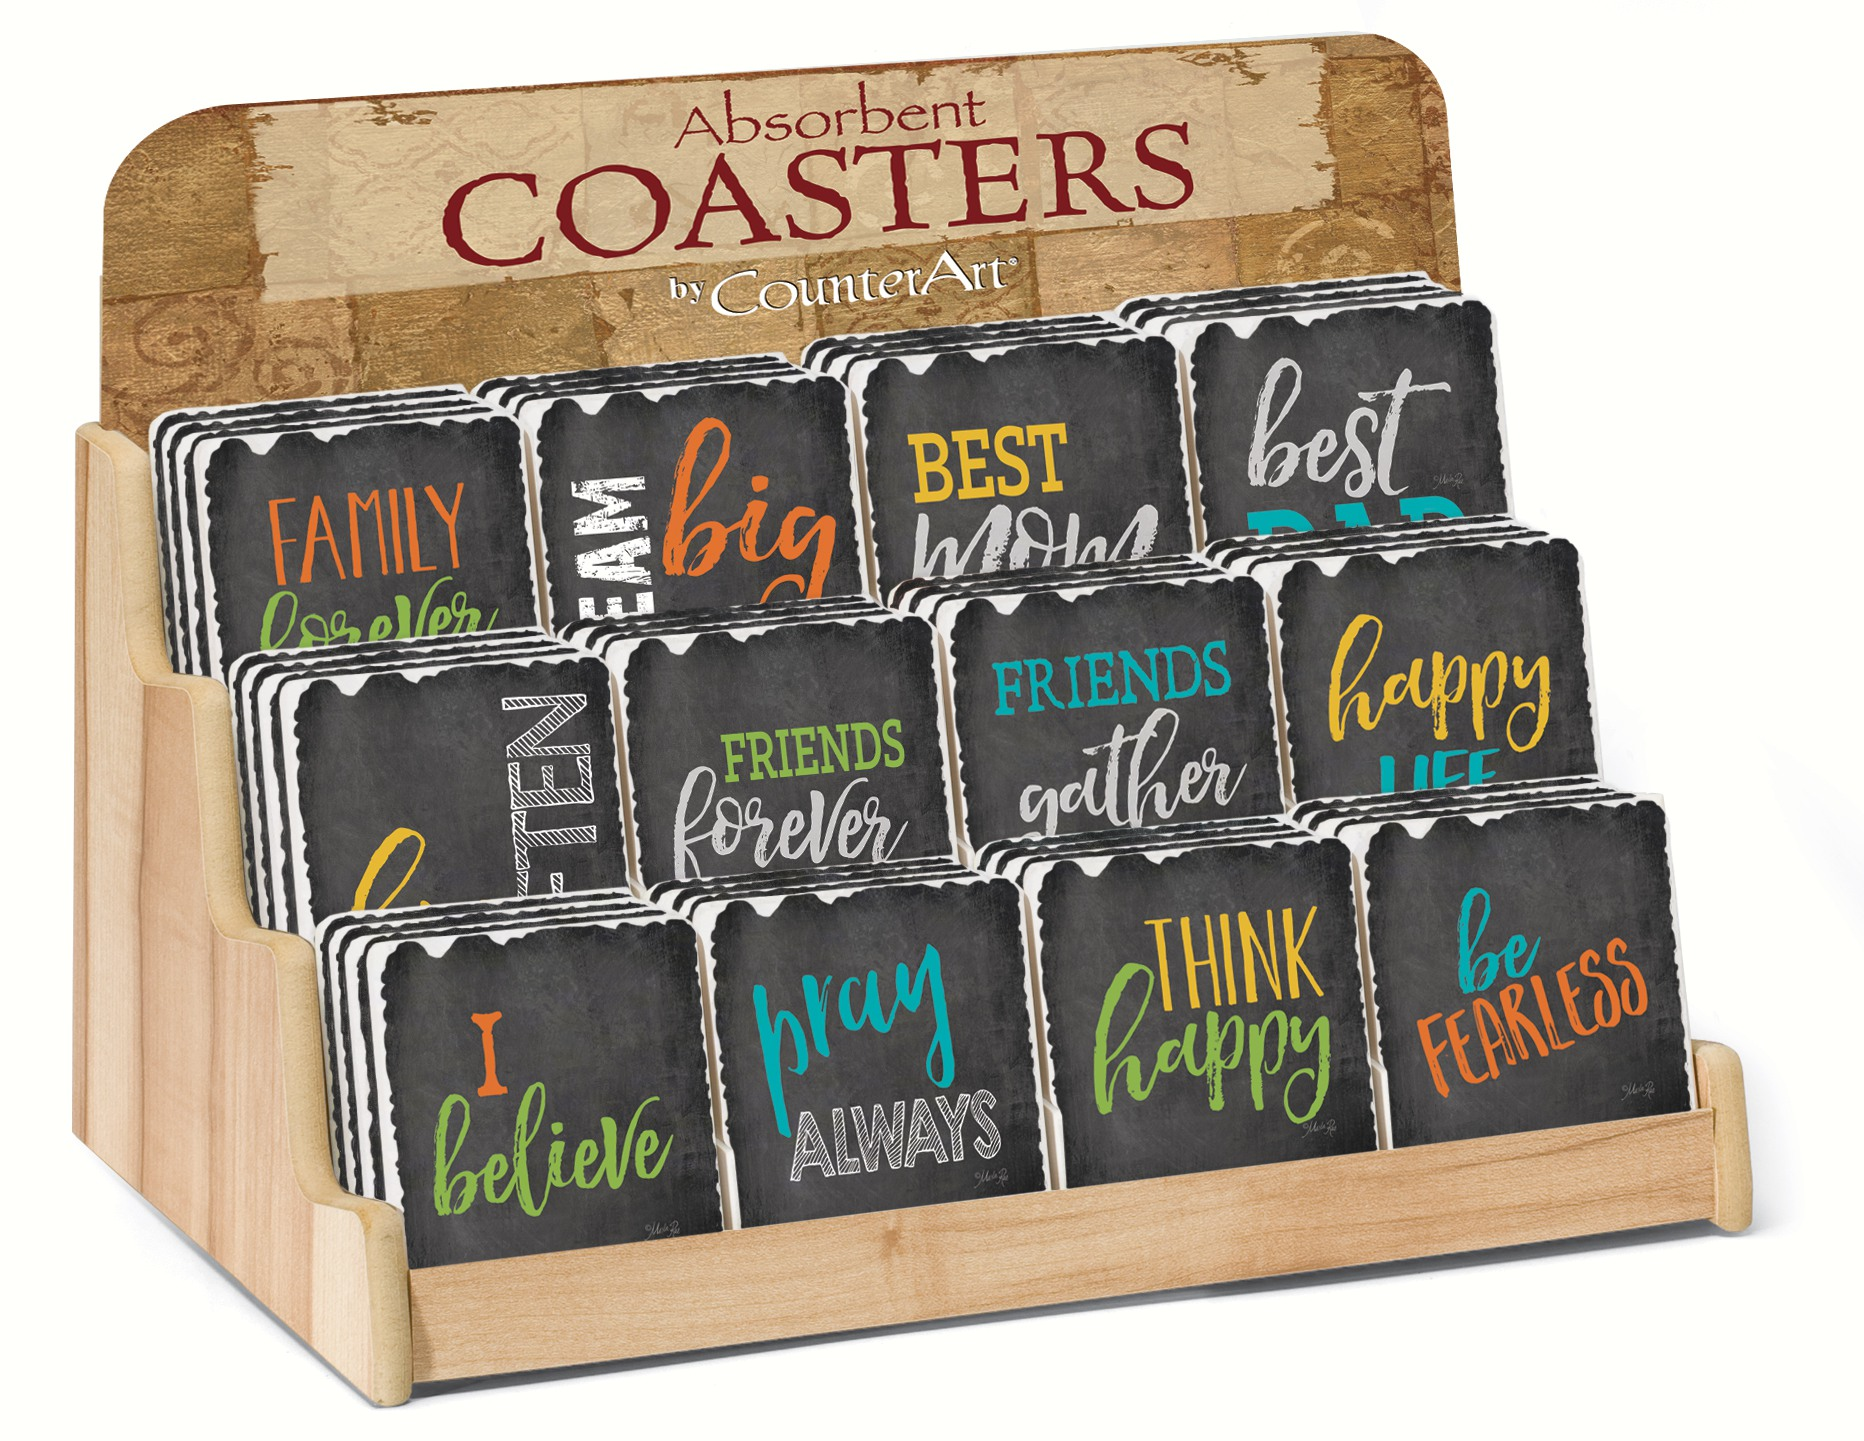 Chalkboard Sentiments Assorment w/ Counter Display (72 Coasters)